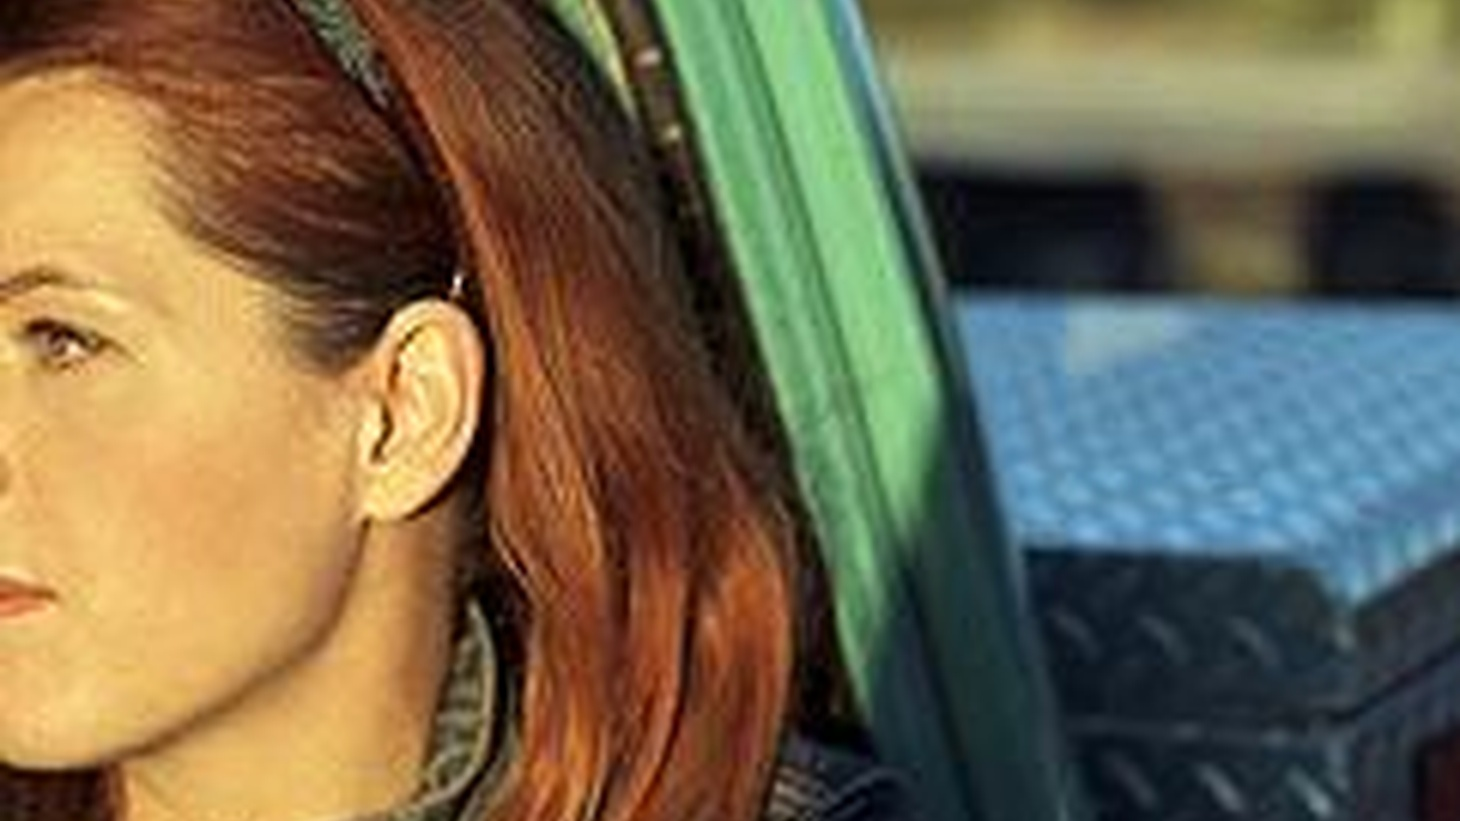 Neko Case is an impeccable singer who deserves more than an alternative-country label. She's Canadian and came into her genre by deconstructing traditional sounds and...